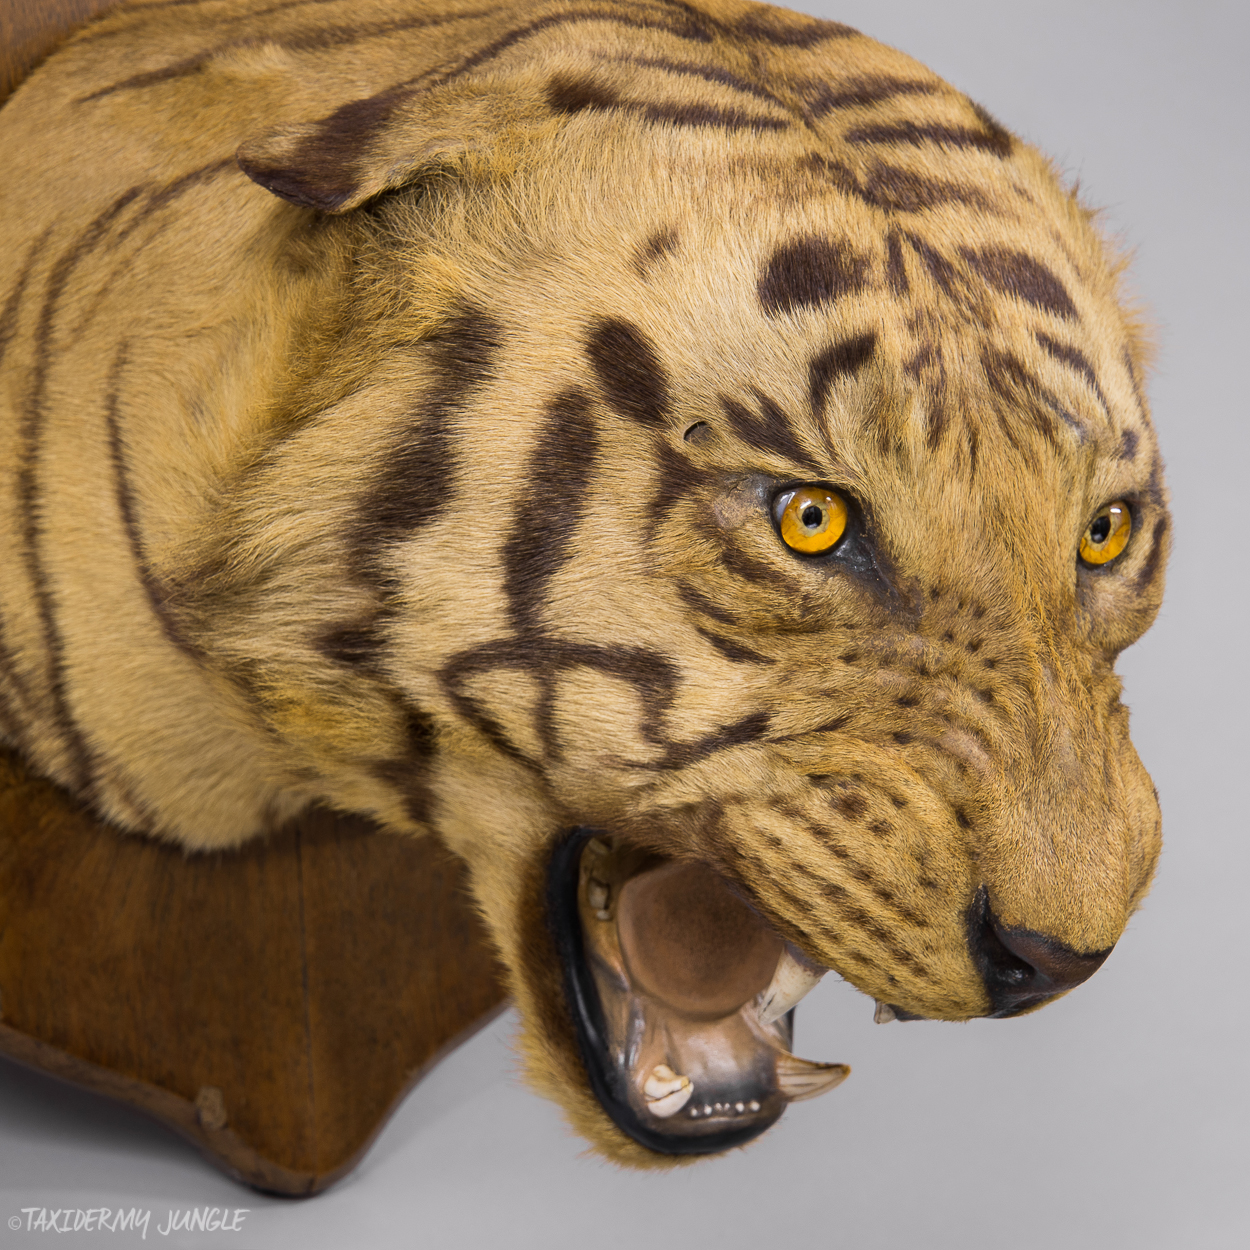 Taxidermy Tiger Head By Theobald Bros Taxidermy Jungle